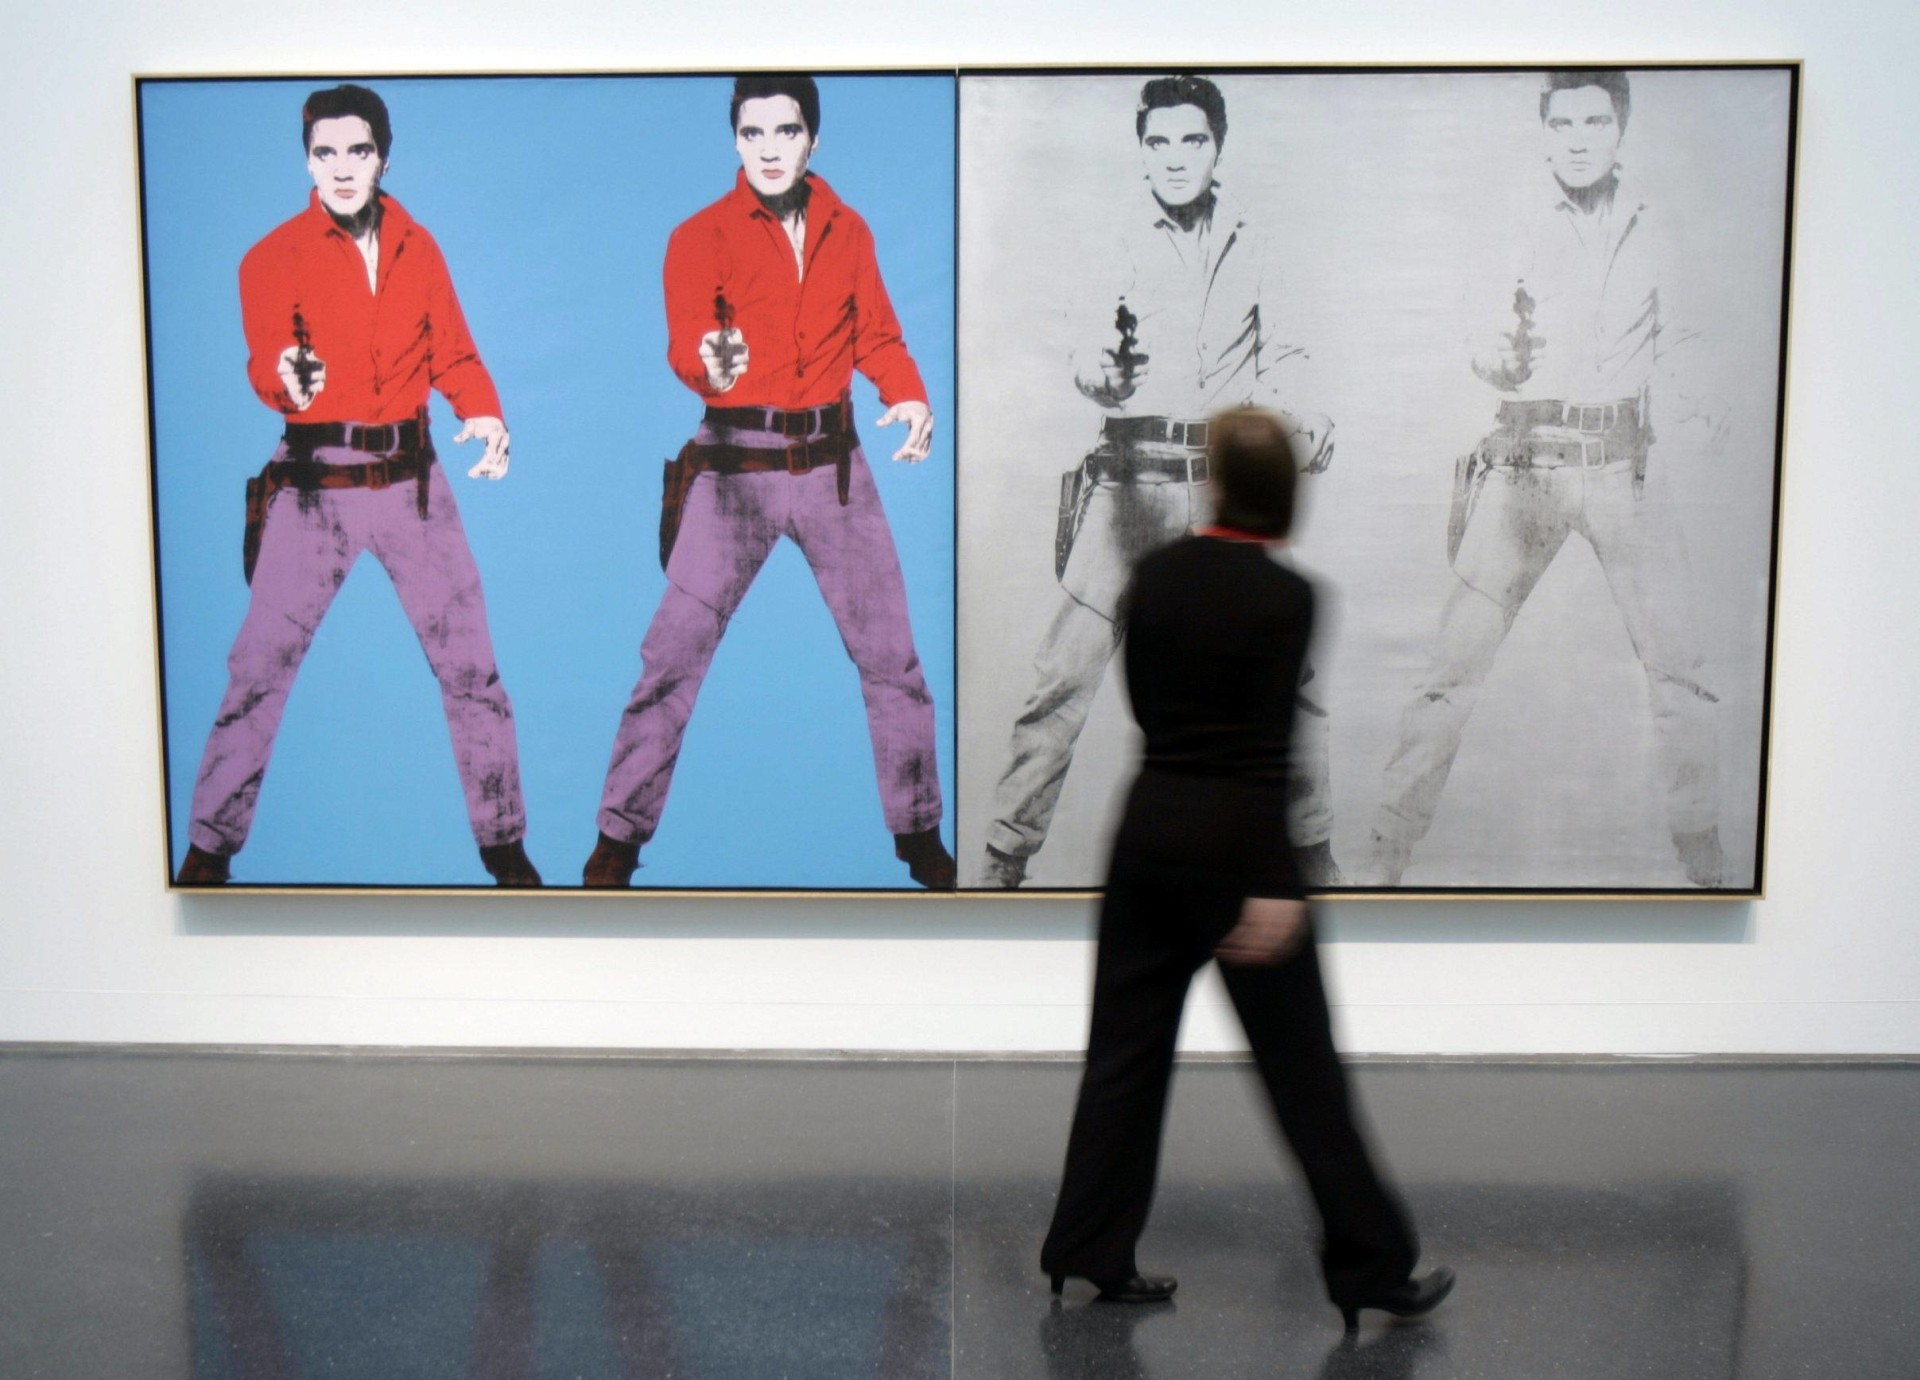 Discover Andy Warhol's Work Through This Virtual Tour andy warhol Discover Andy Warhol's Work Through This Virtual Tour 374649